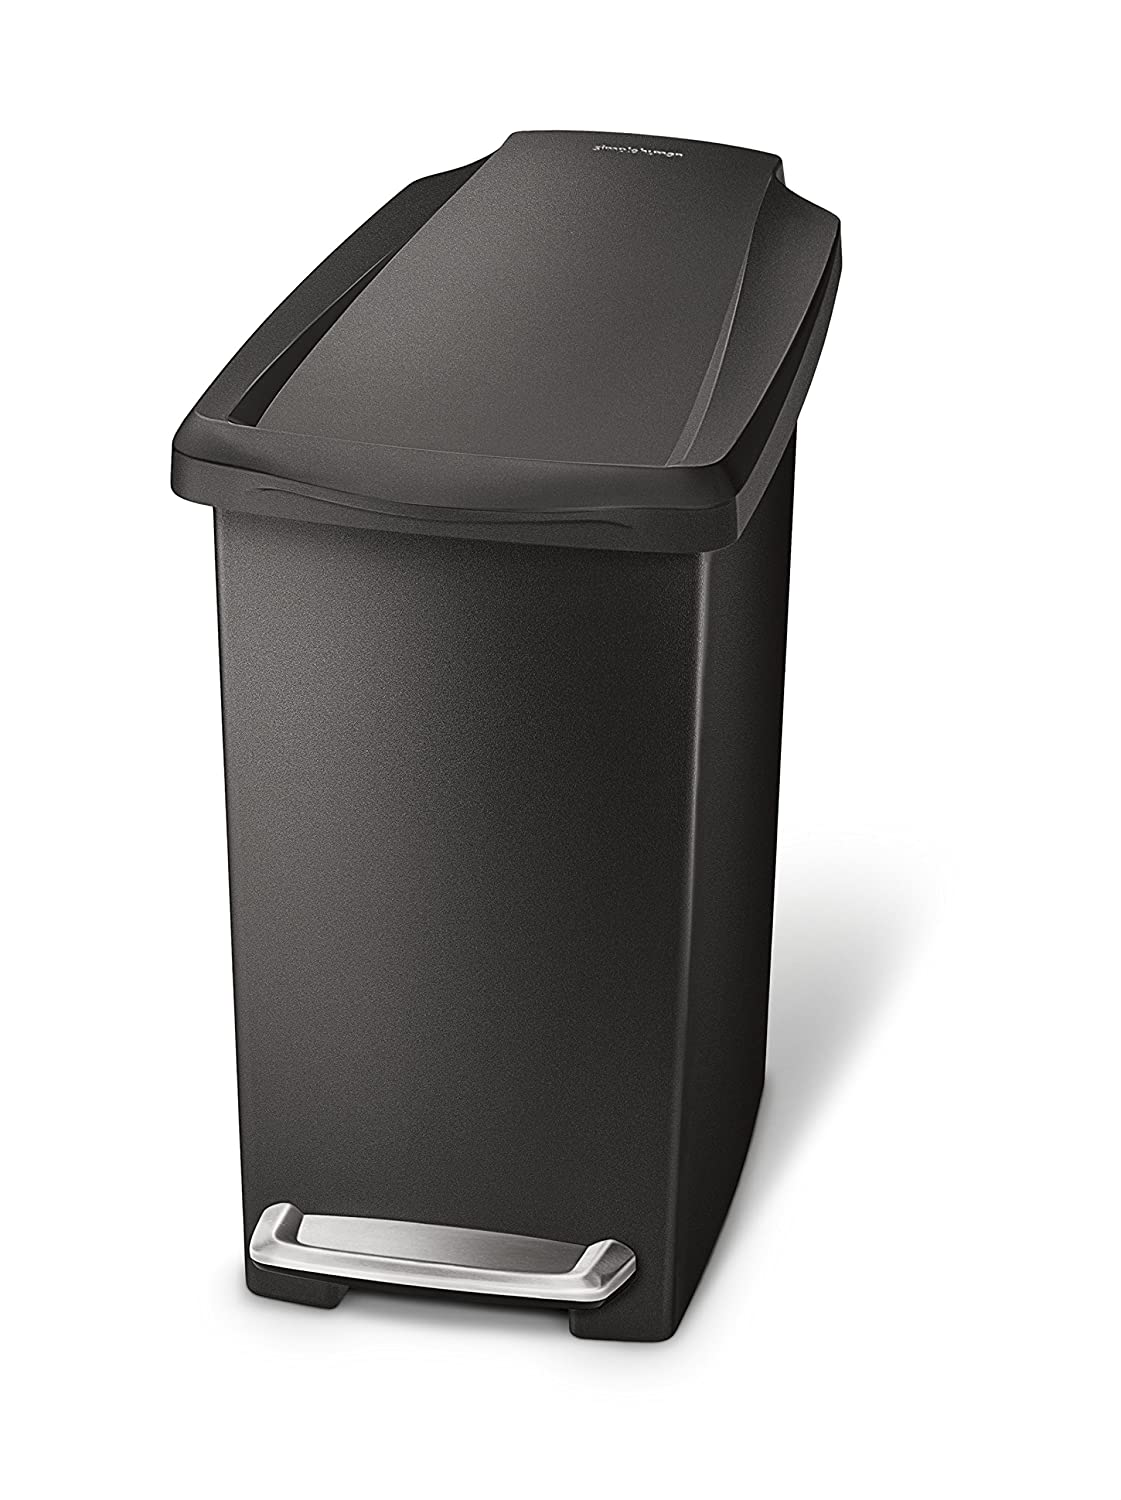 simplehuman 10 Liter / 2.6 Gallon Compact Slim Bathroom or Office Step Trash Can, Black Plastic